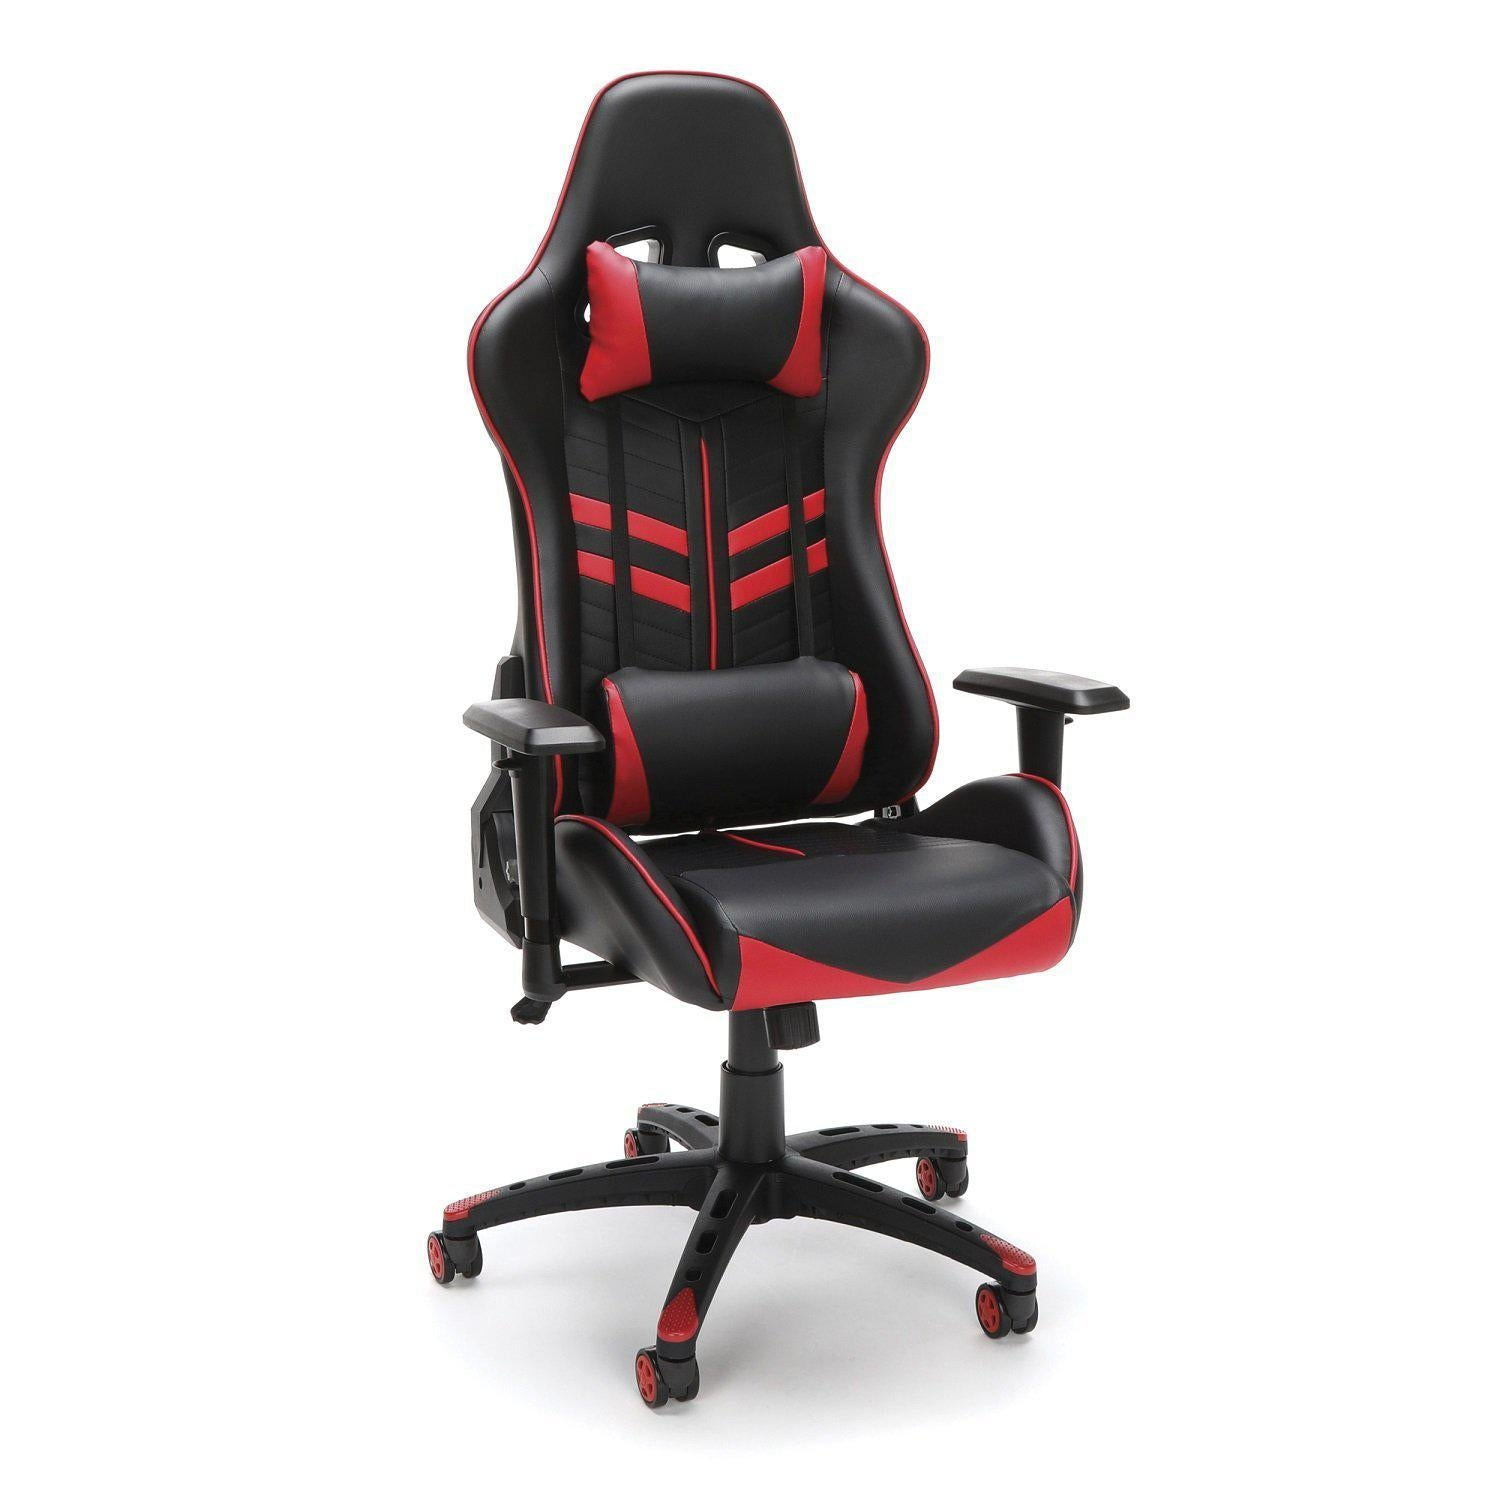 NextGen Leather Deluxe High-Back Gaming Chair-Chairs-Red-